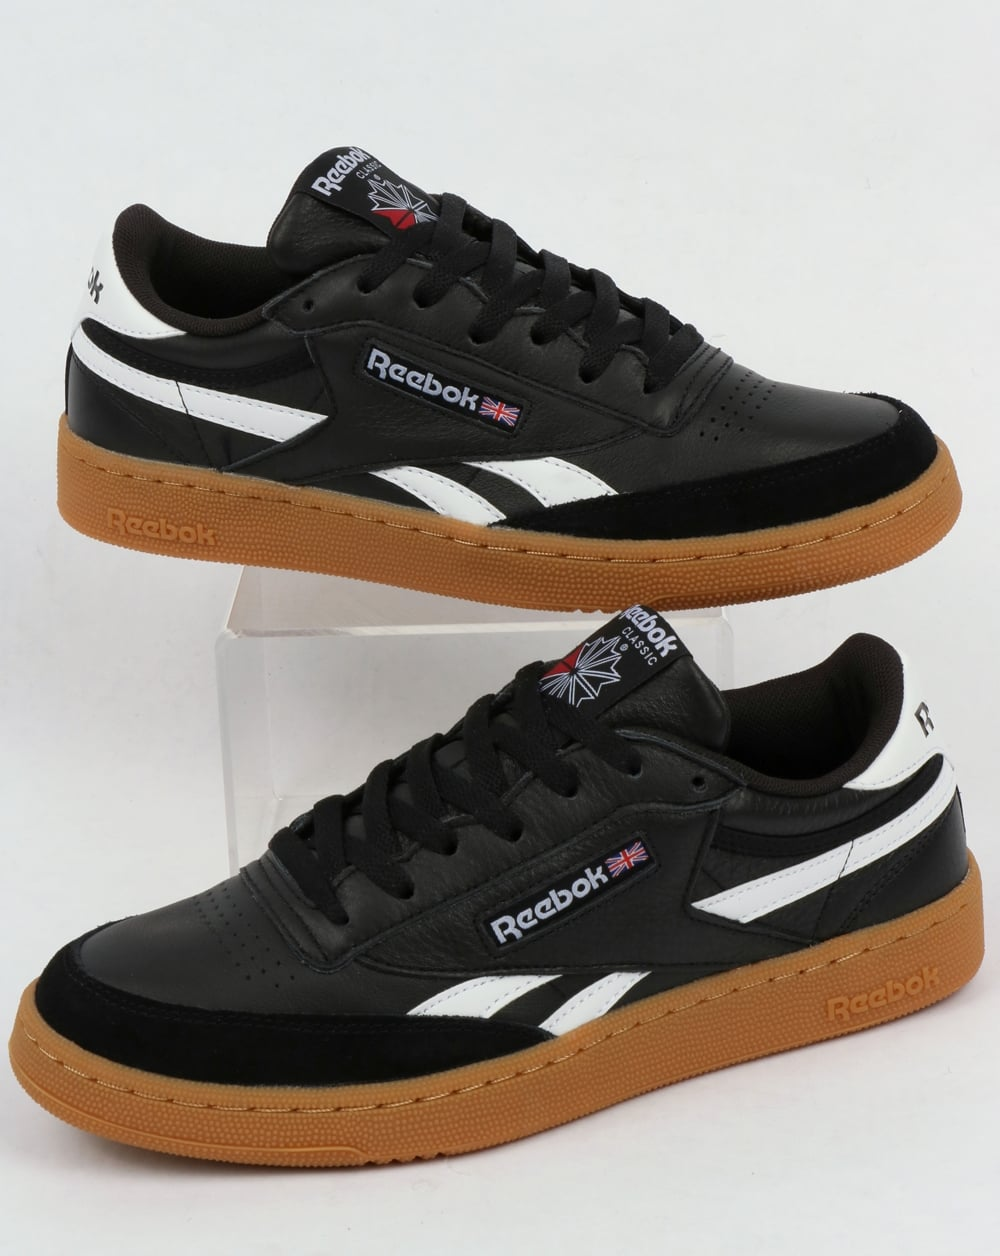 reebok classic revenge plus trainers in white and navy